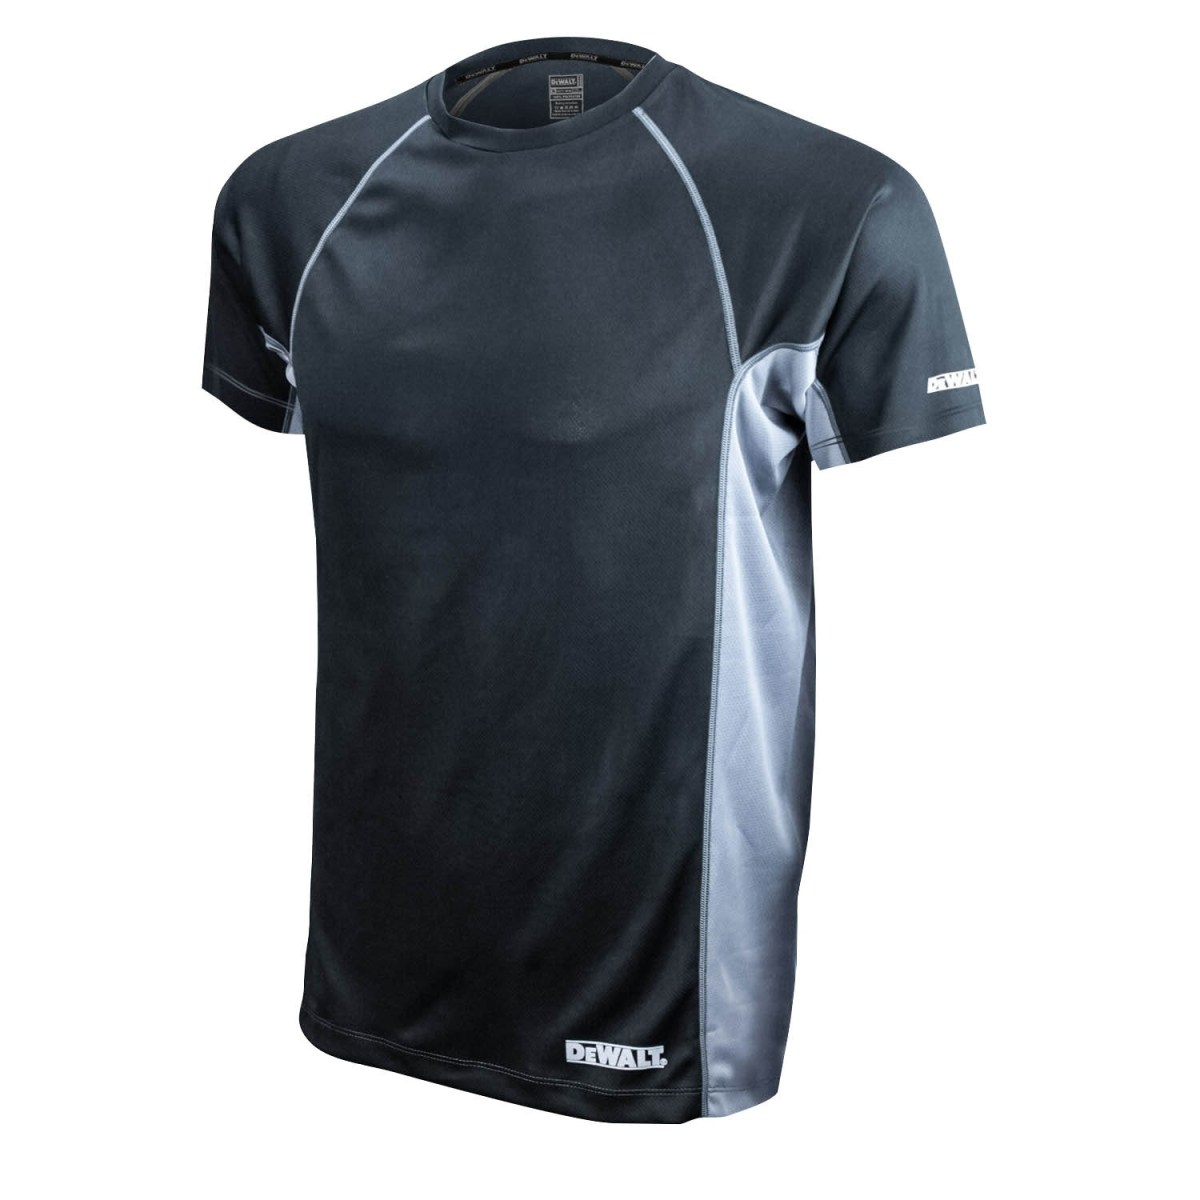 DEWALT NON-RATED TWO TONE PERFORMANCE T-SHIRT